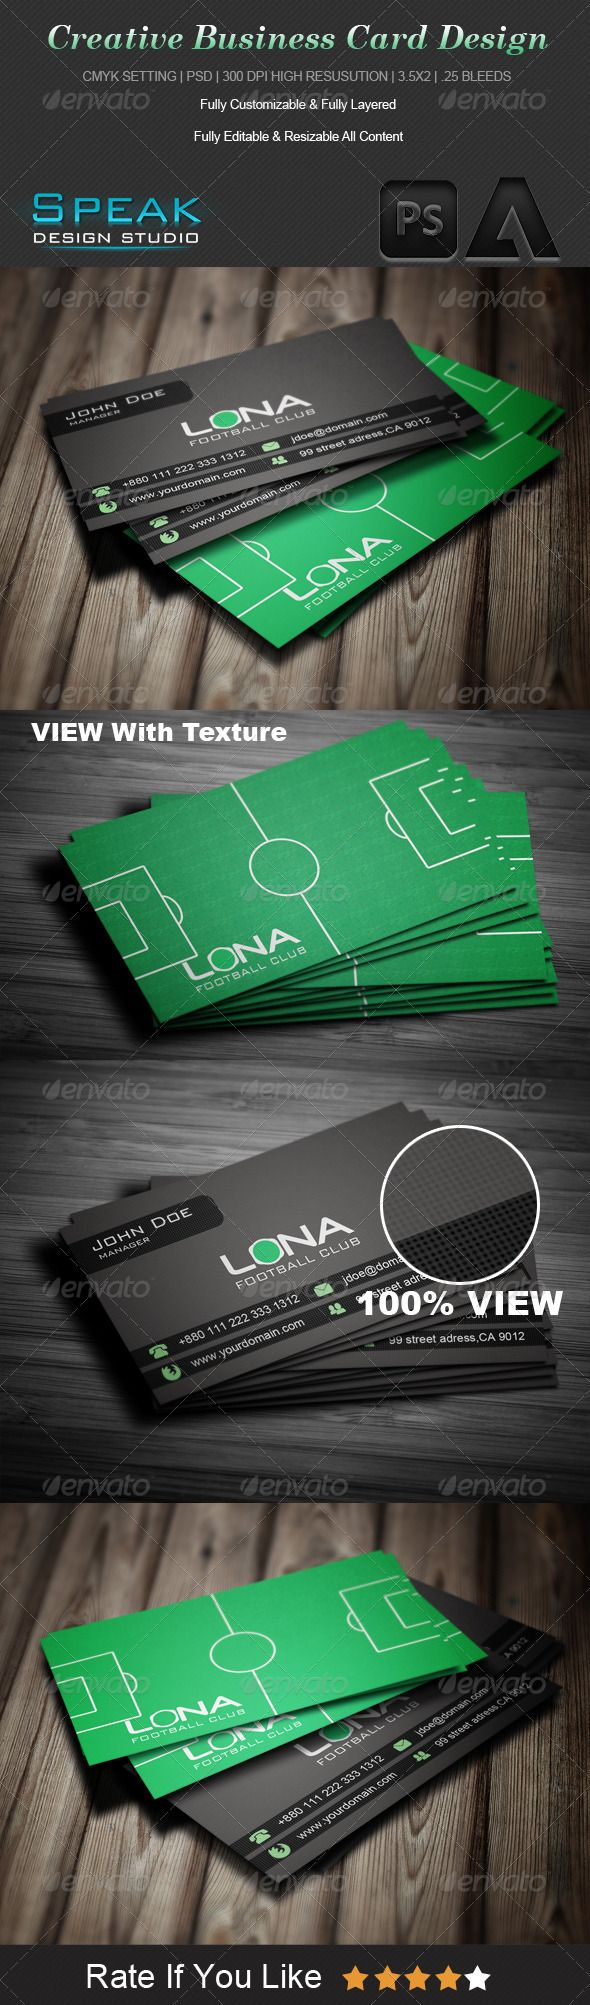 Football coach business card business cards business and logos creativesports business card design magicingreecefo Gallery